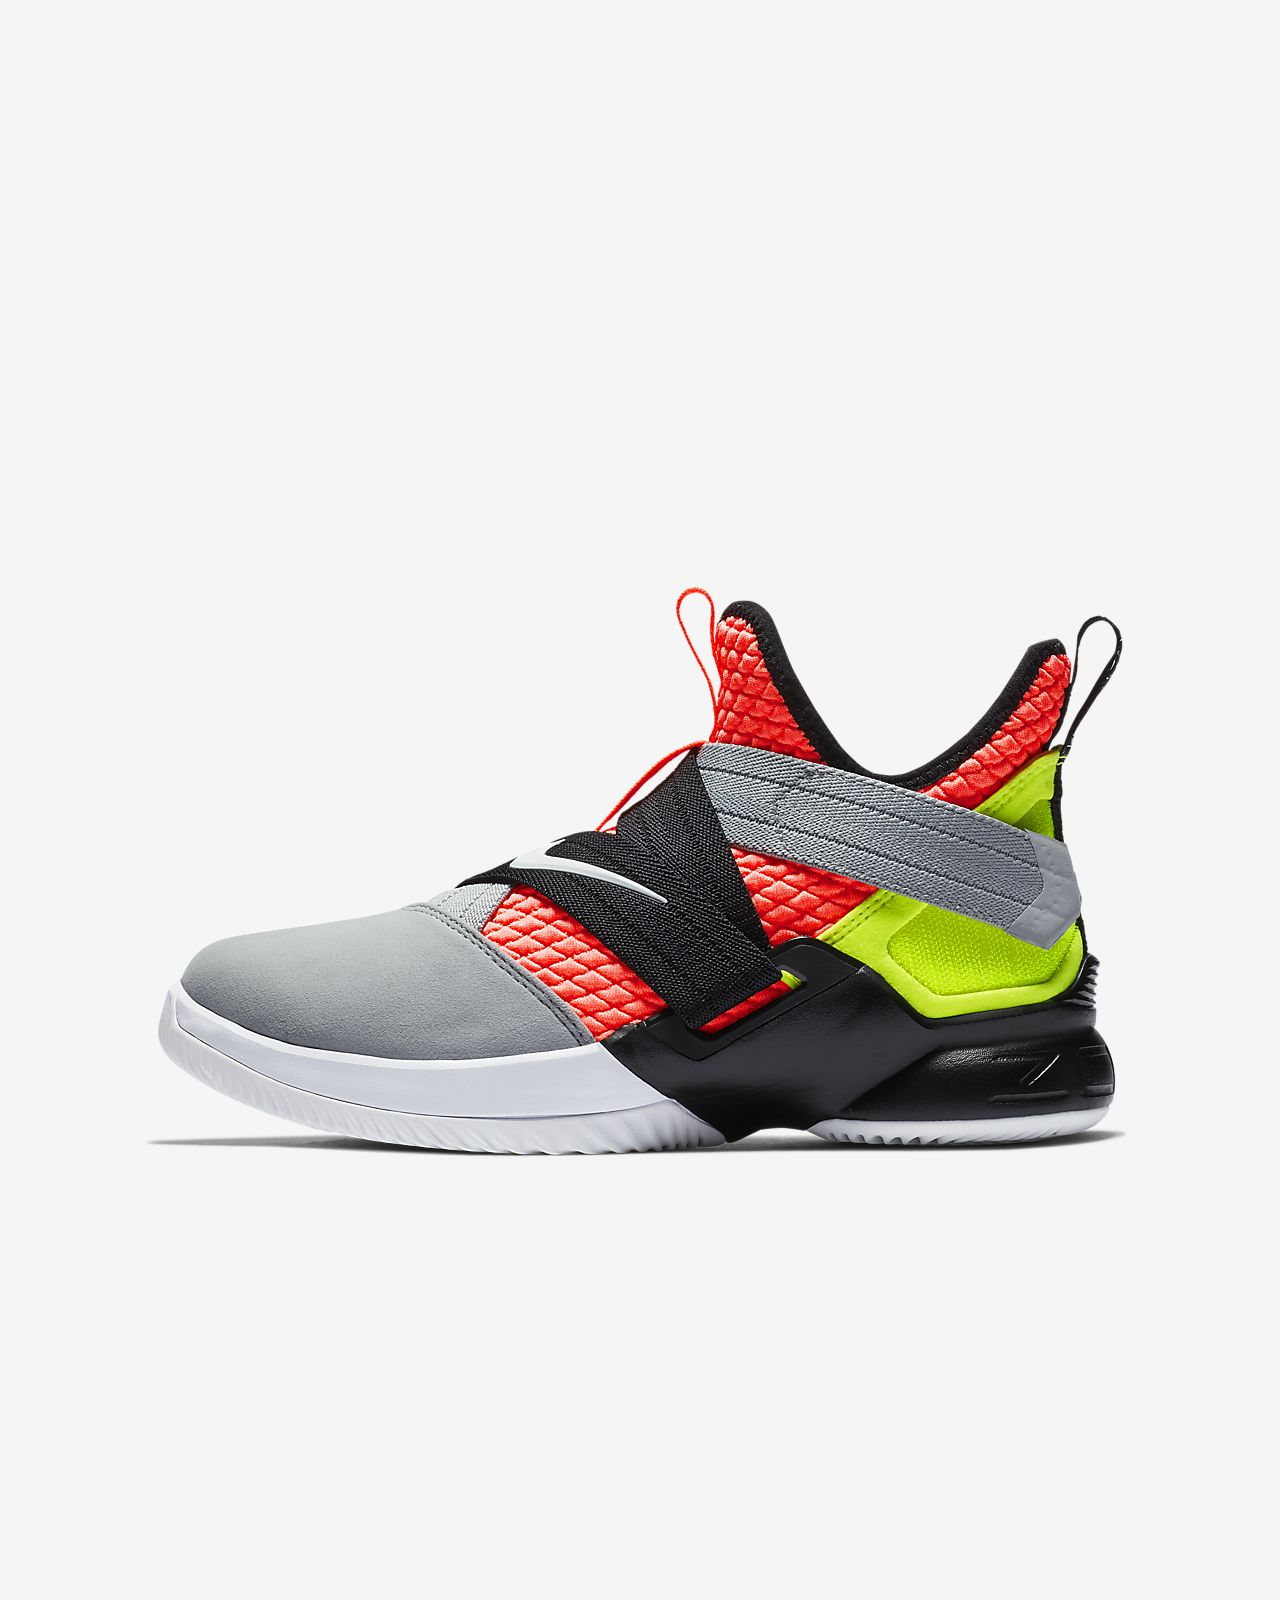 big sale 0d9cb a0d3c ... LeBron Soldier 12 SFG Big Kids  Basketball Shoe